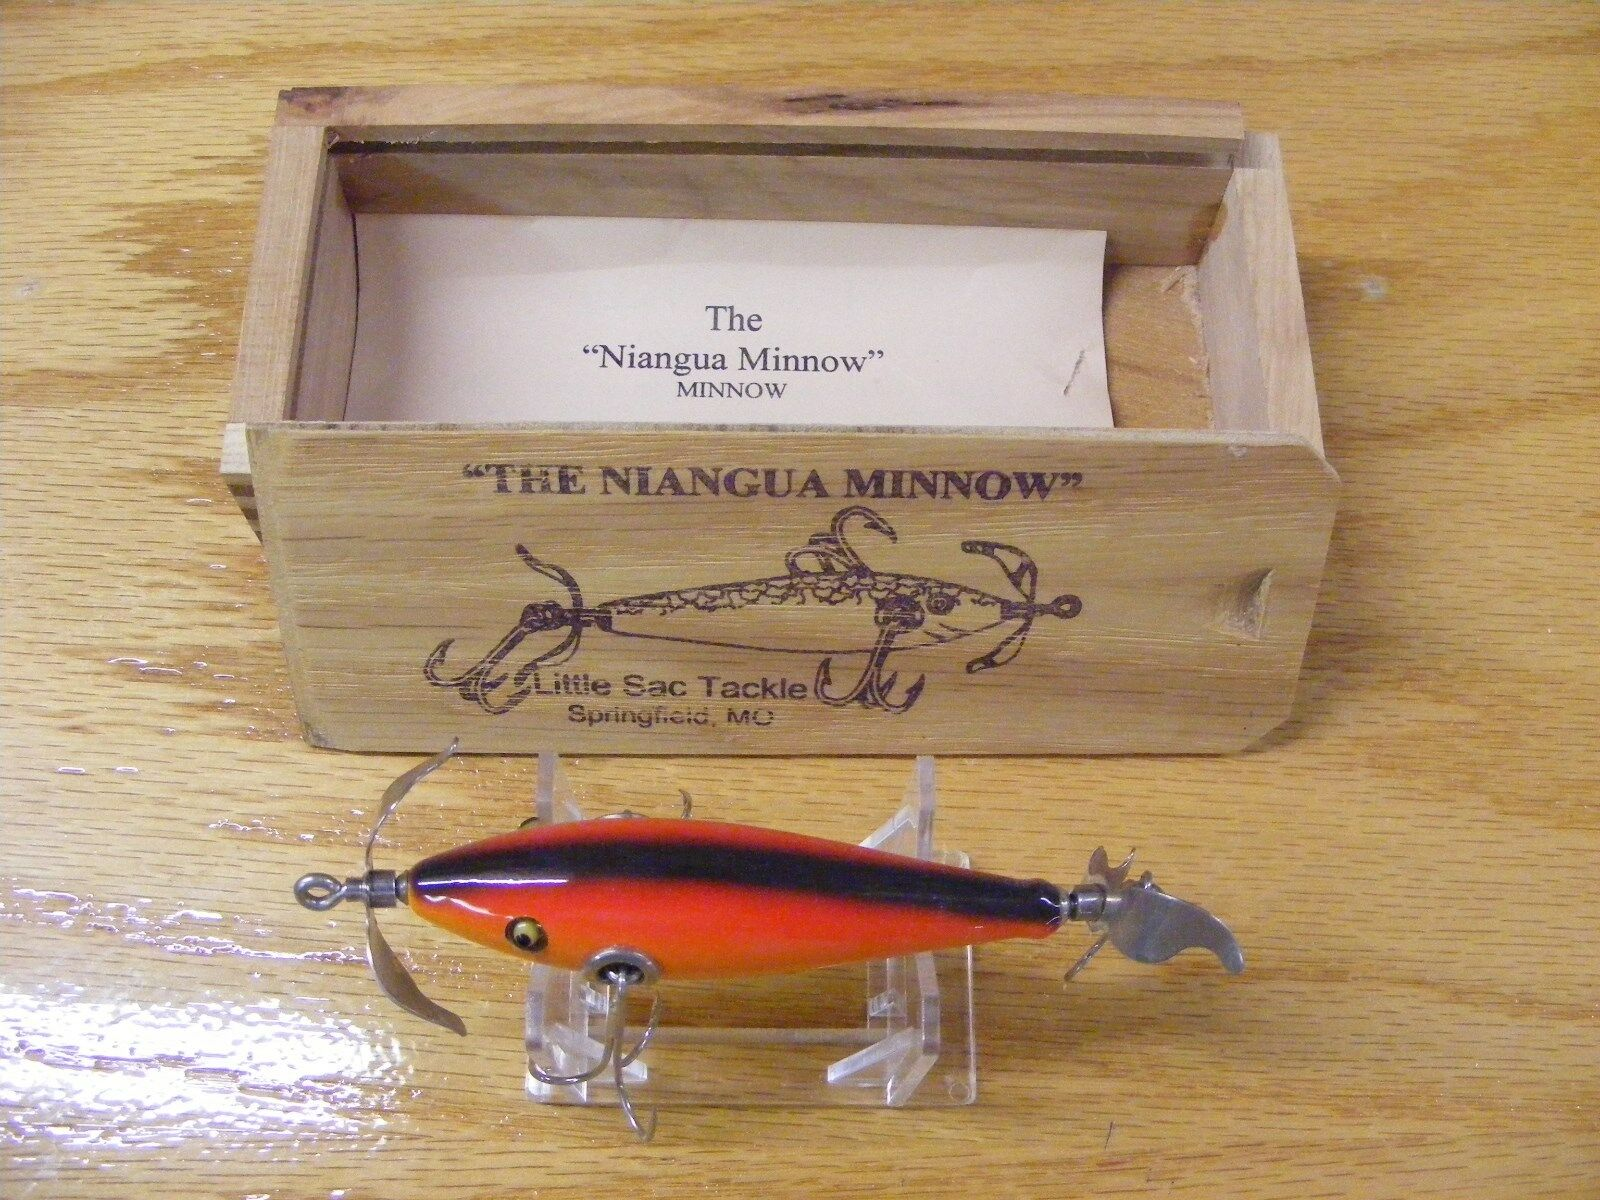 Little  Sac Bait Co Niangua Minnow Glasseye Lure in Rainbow color Wood Box  free shipping!